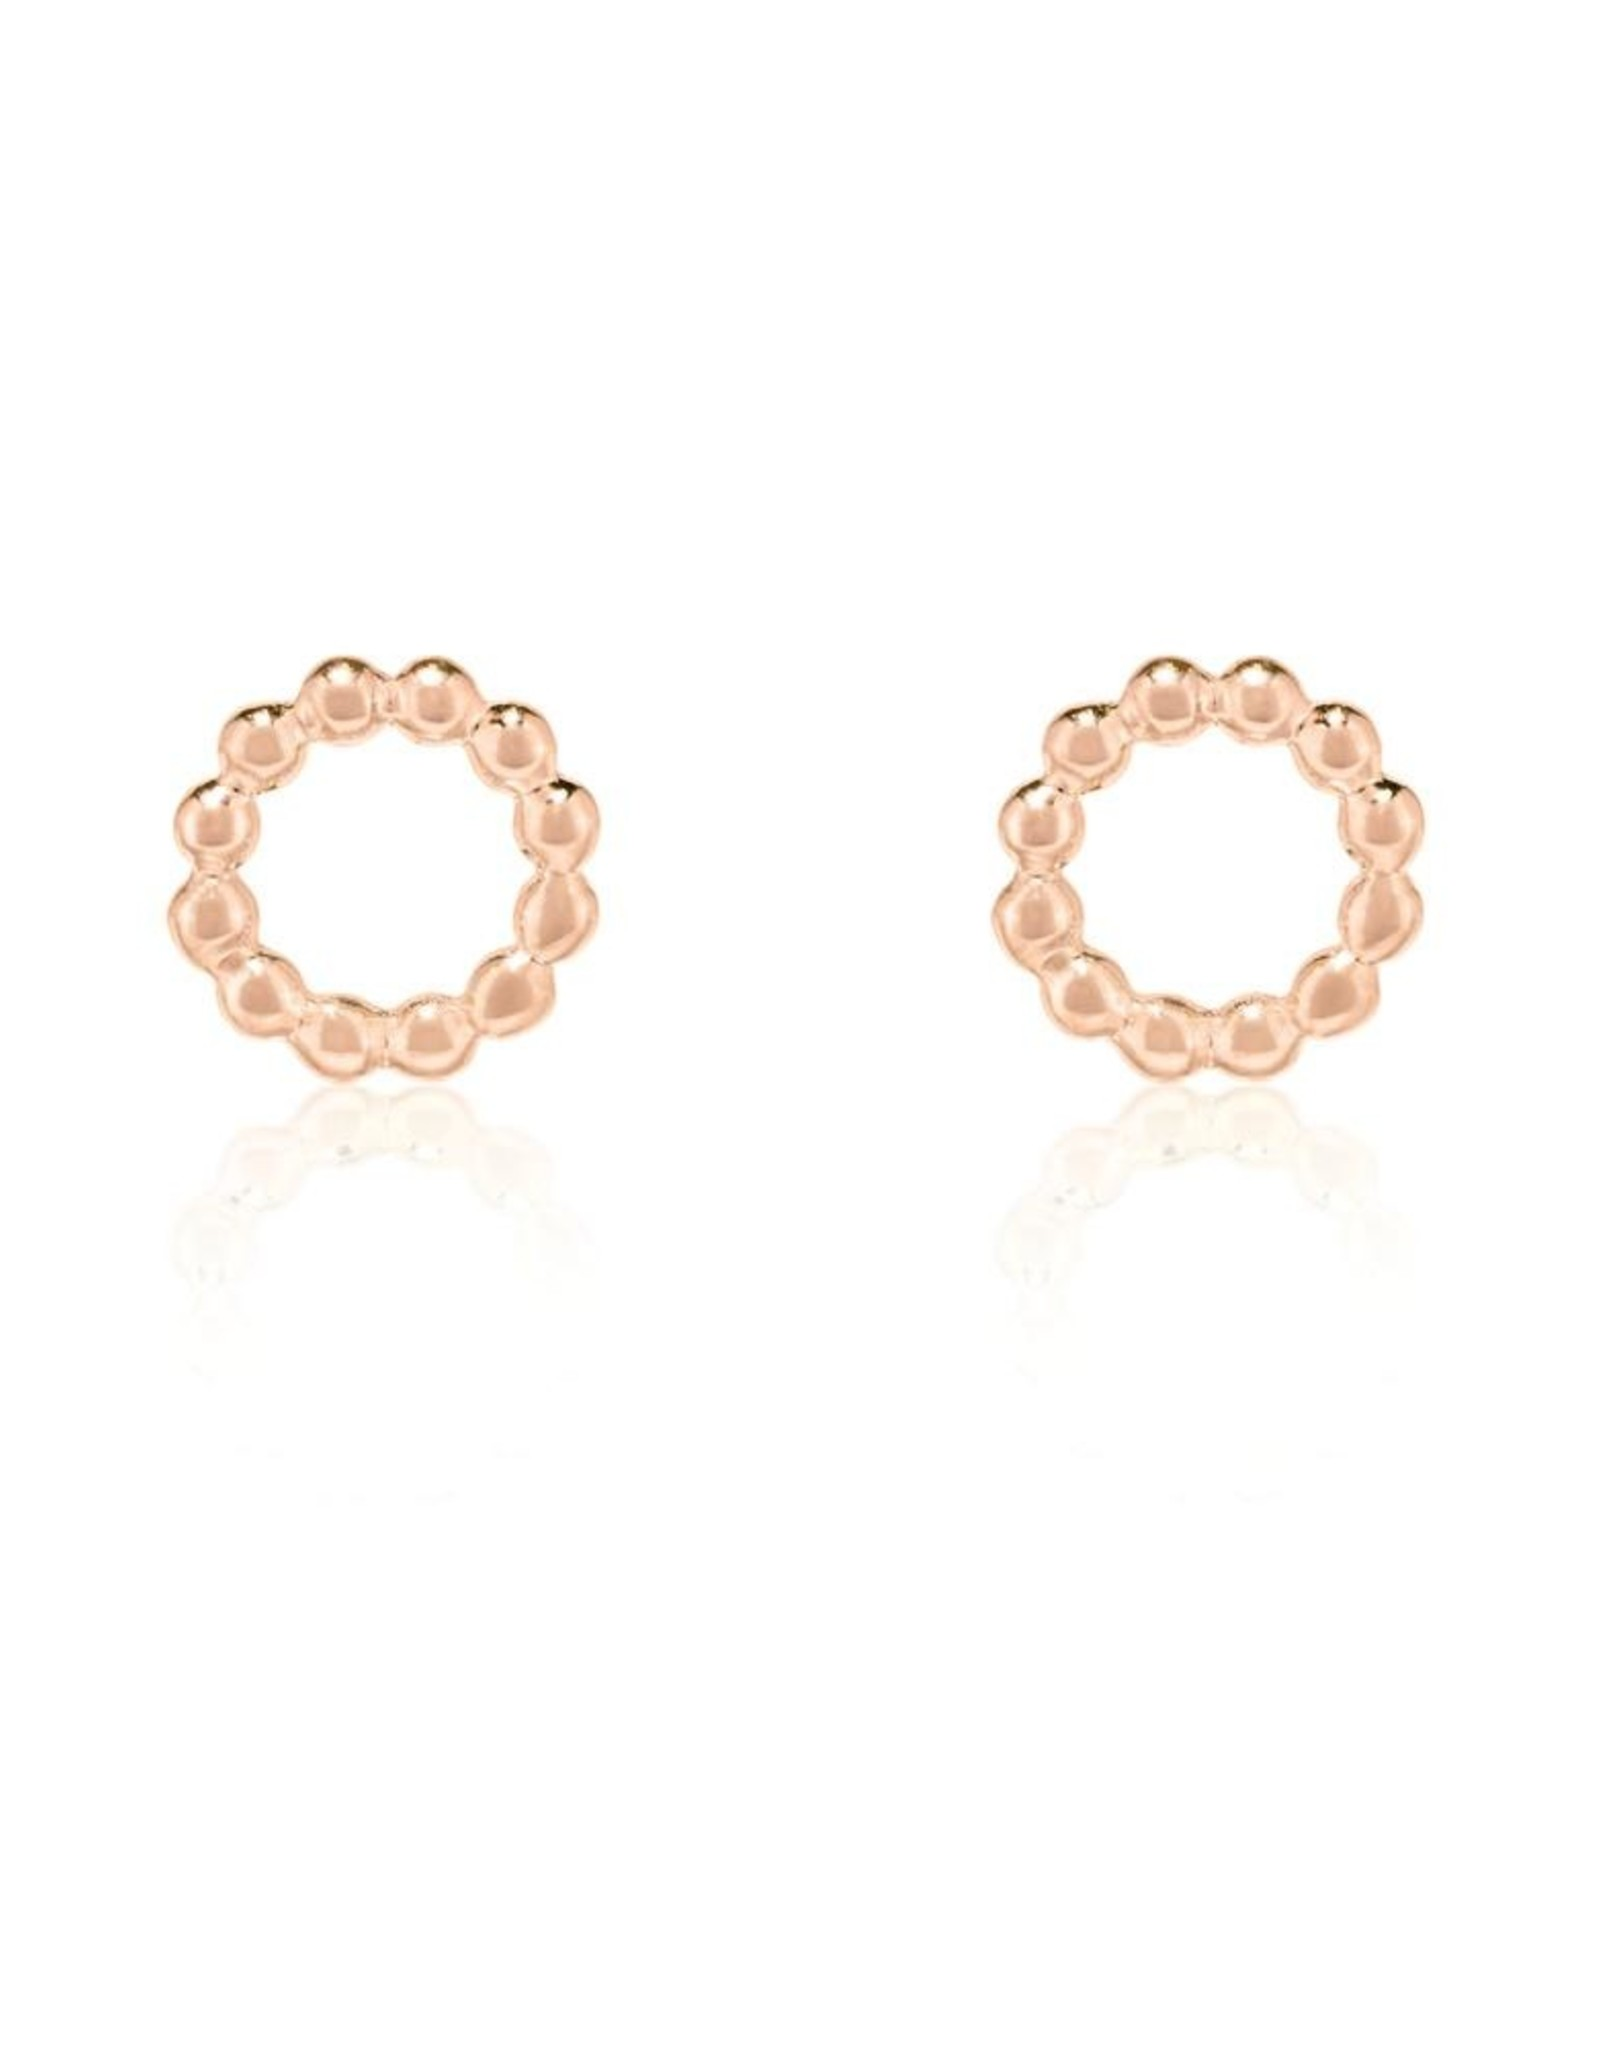 Beaded Circle Stud Earrings - Rose Gold Plated Sterling Silver